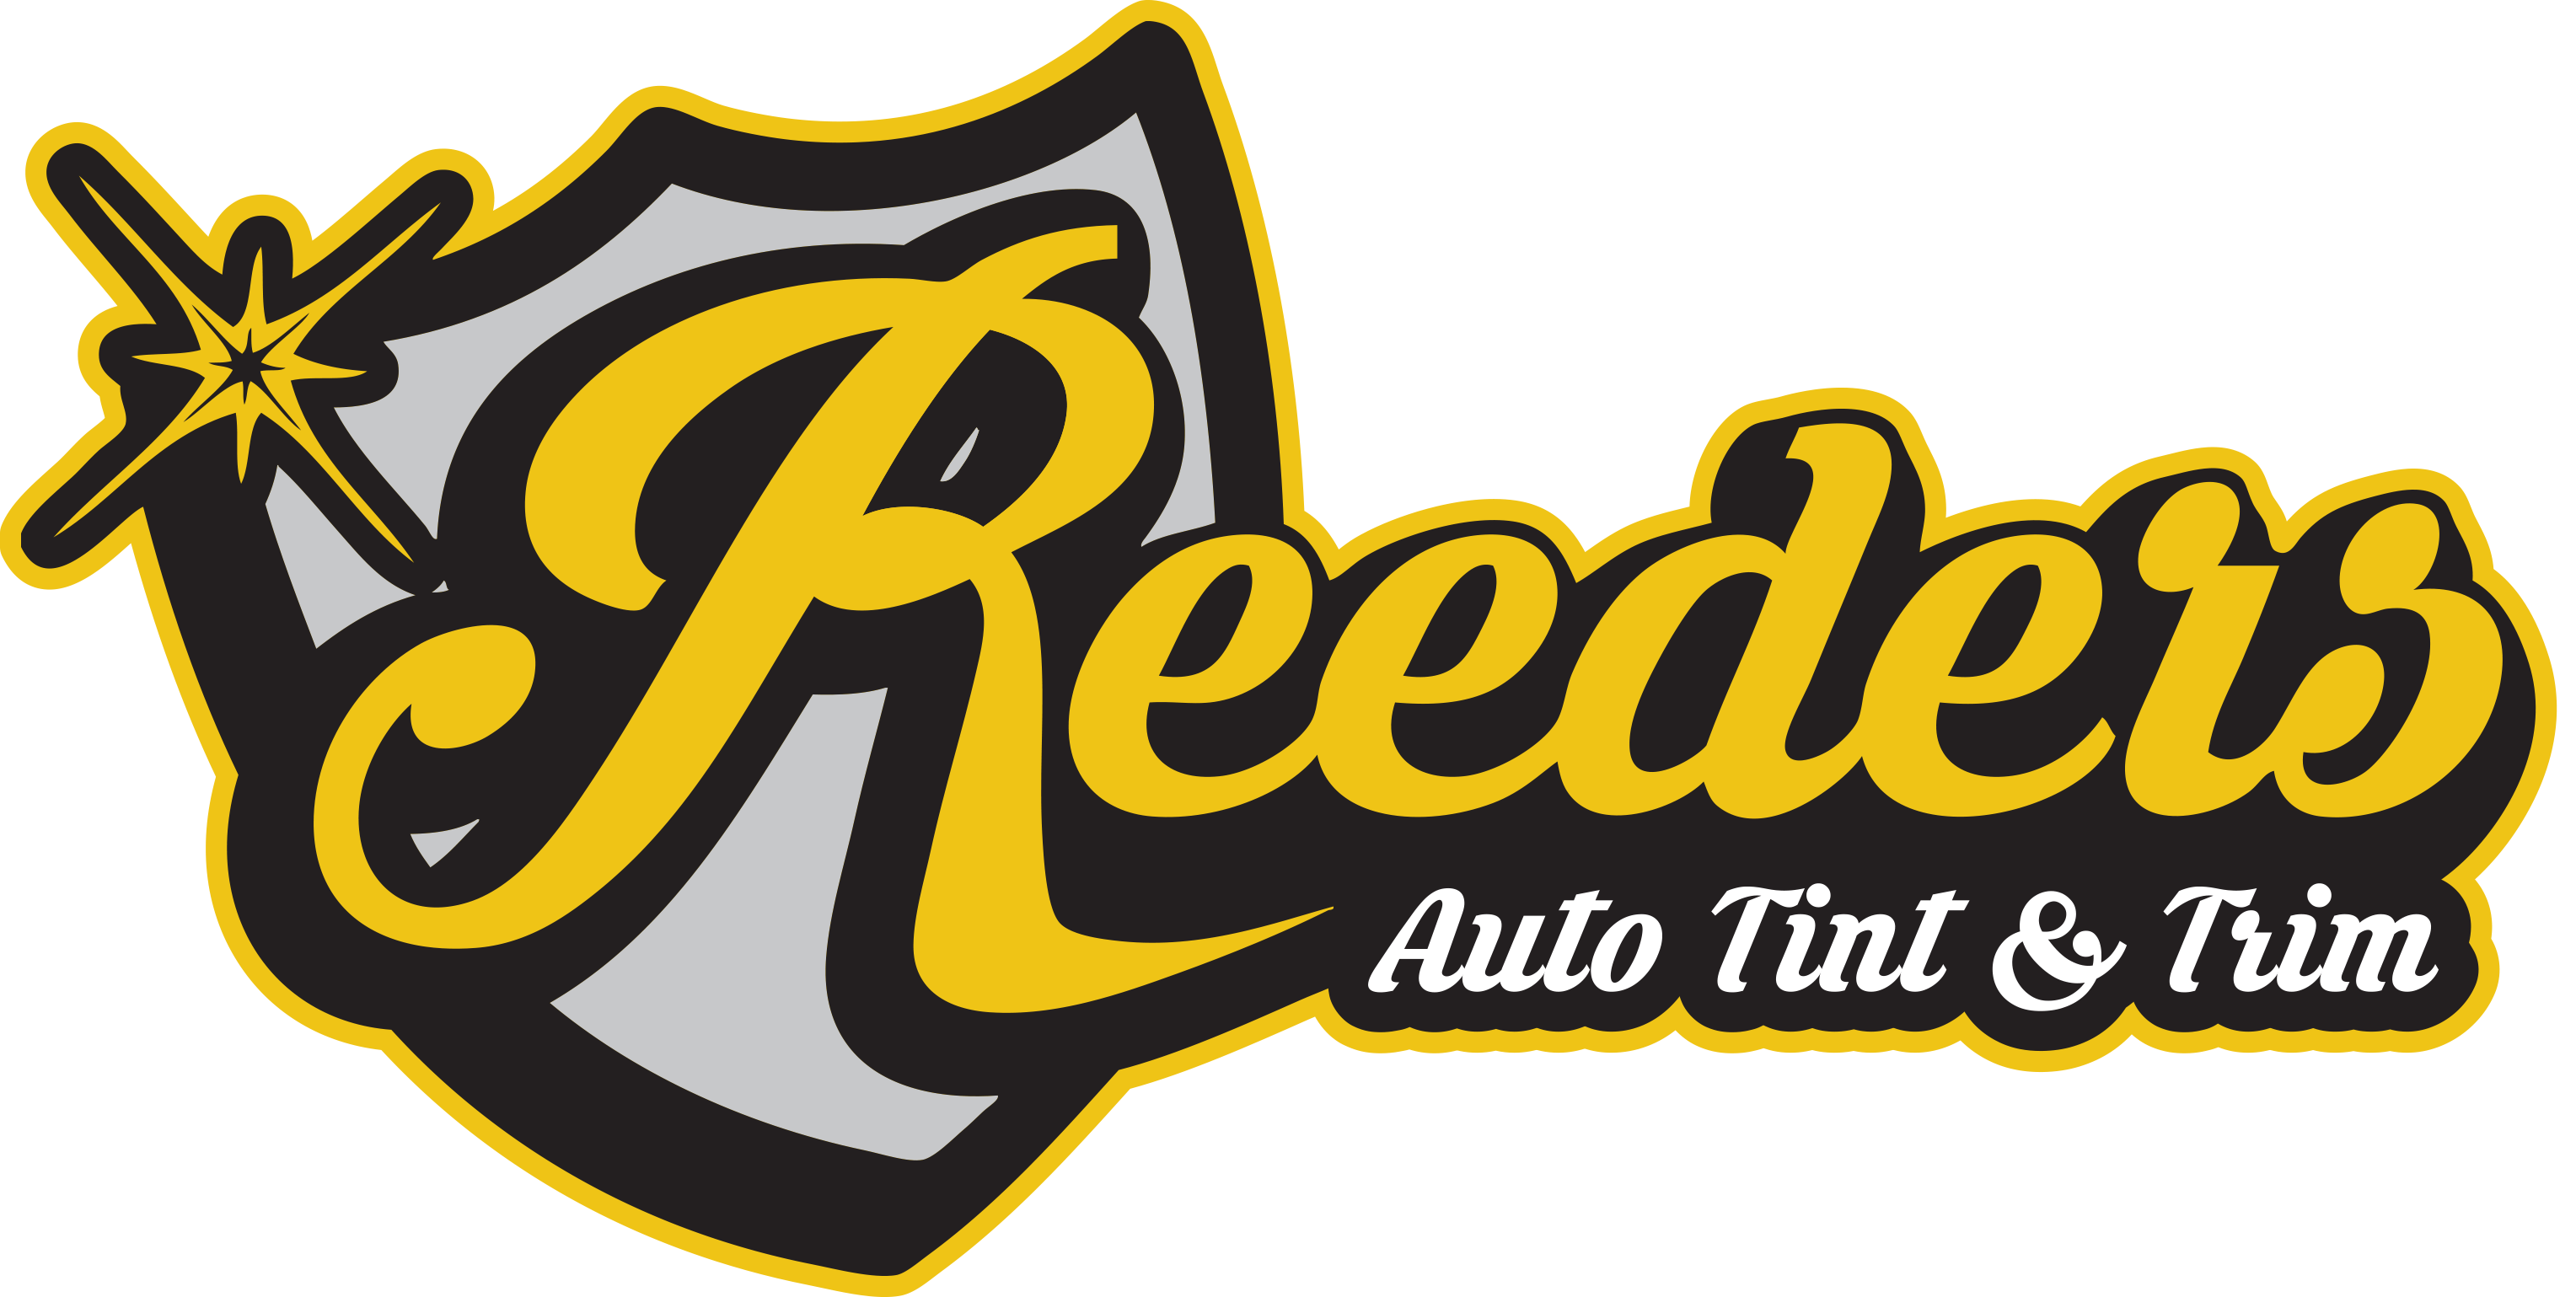 Reeder's Auto Tint | The Most Reviewed Window Tint Shop in Pinellas